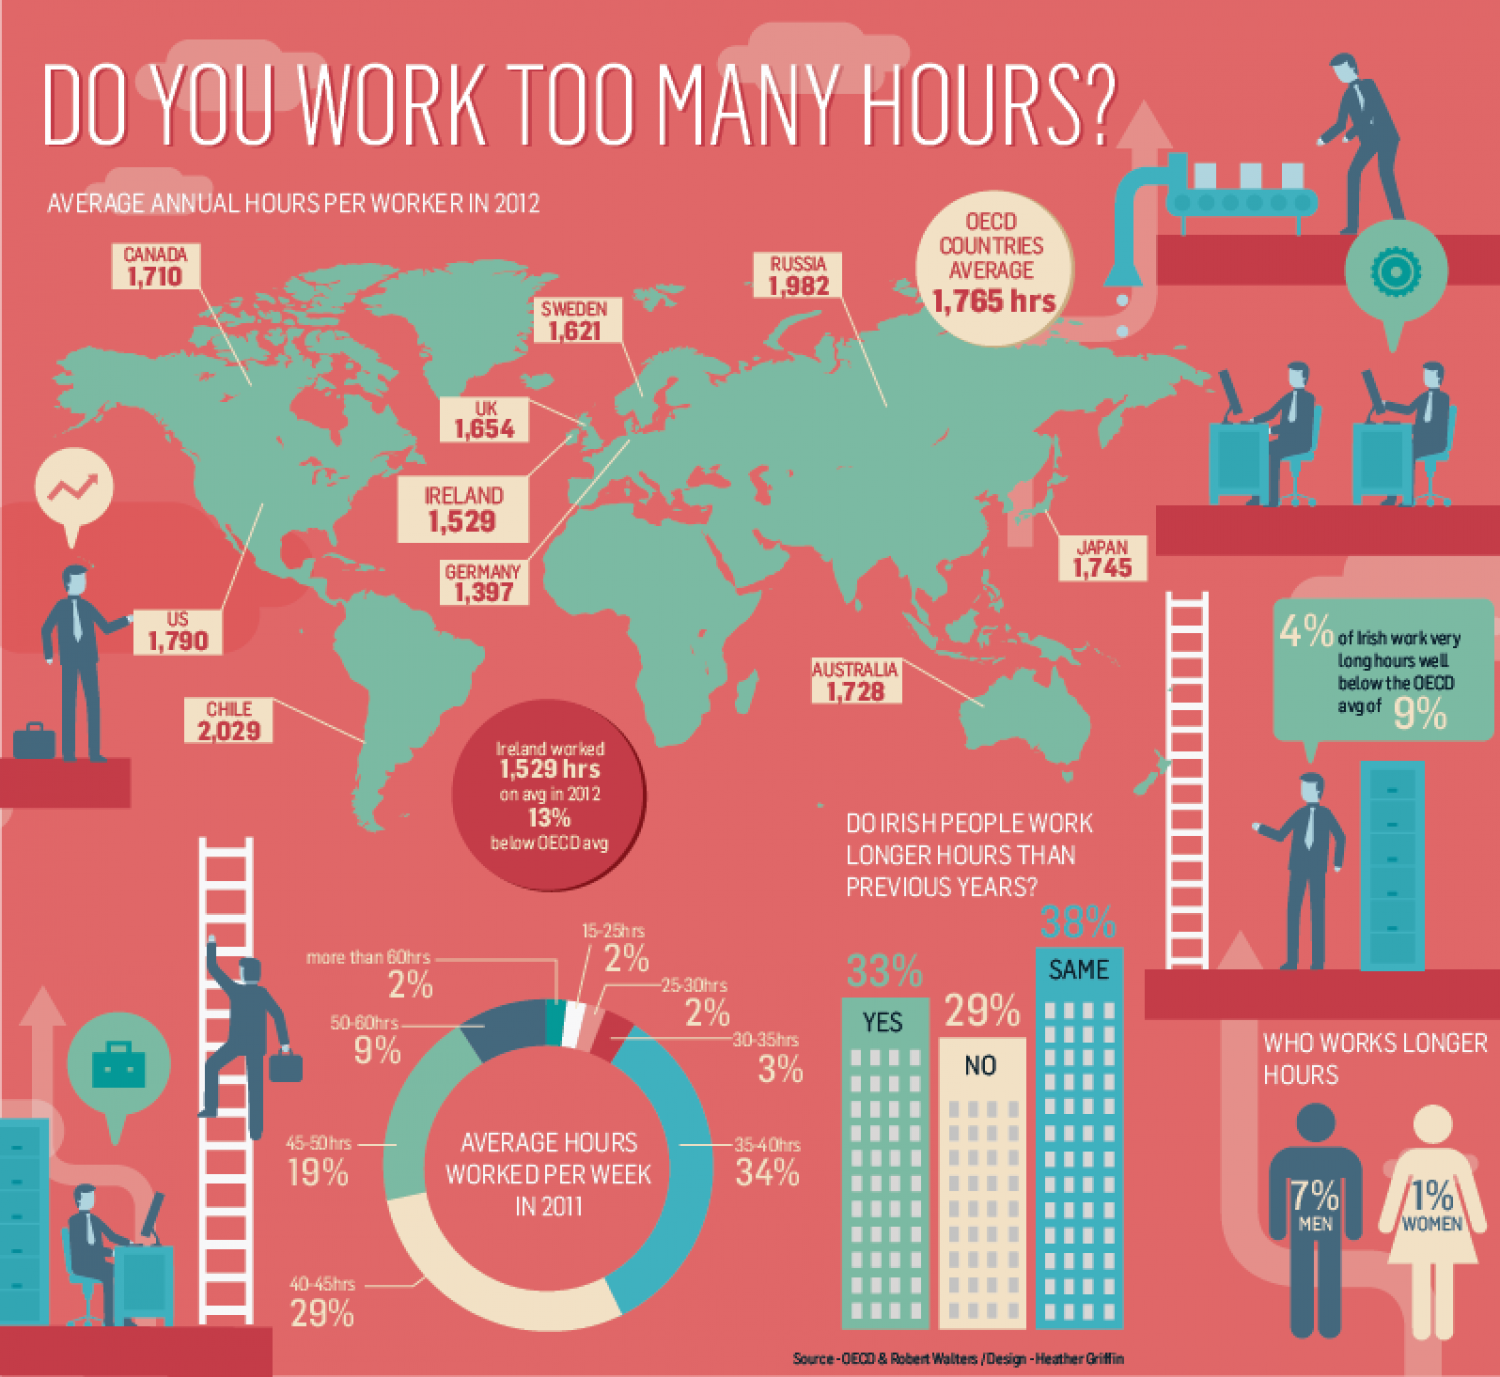 Do you work too many hours? Infographic